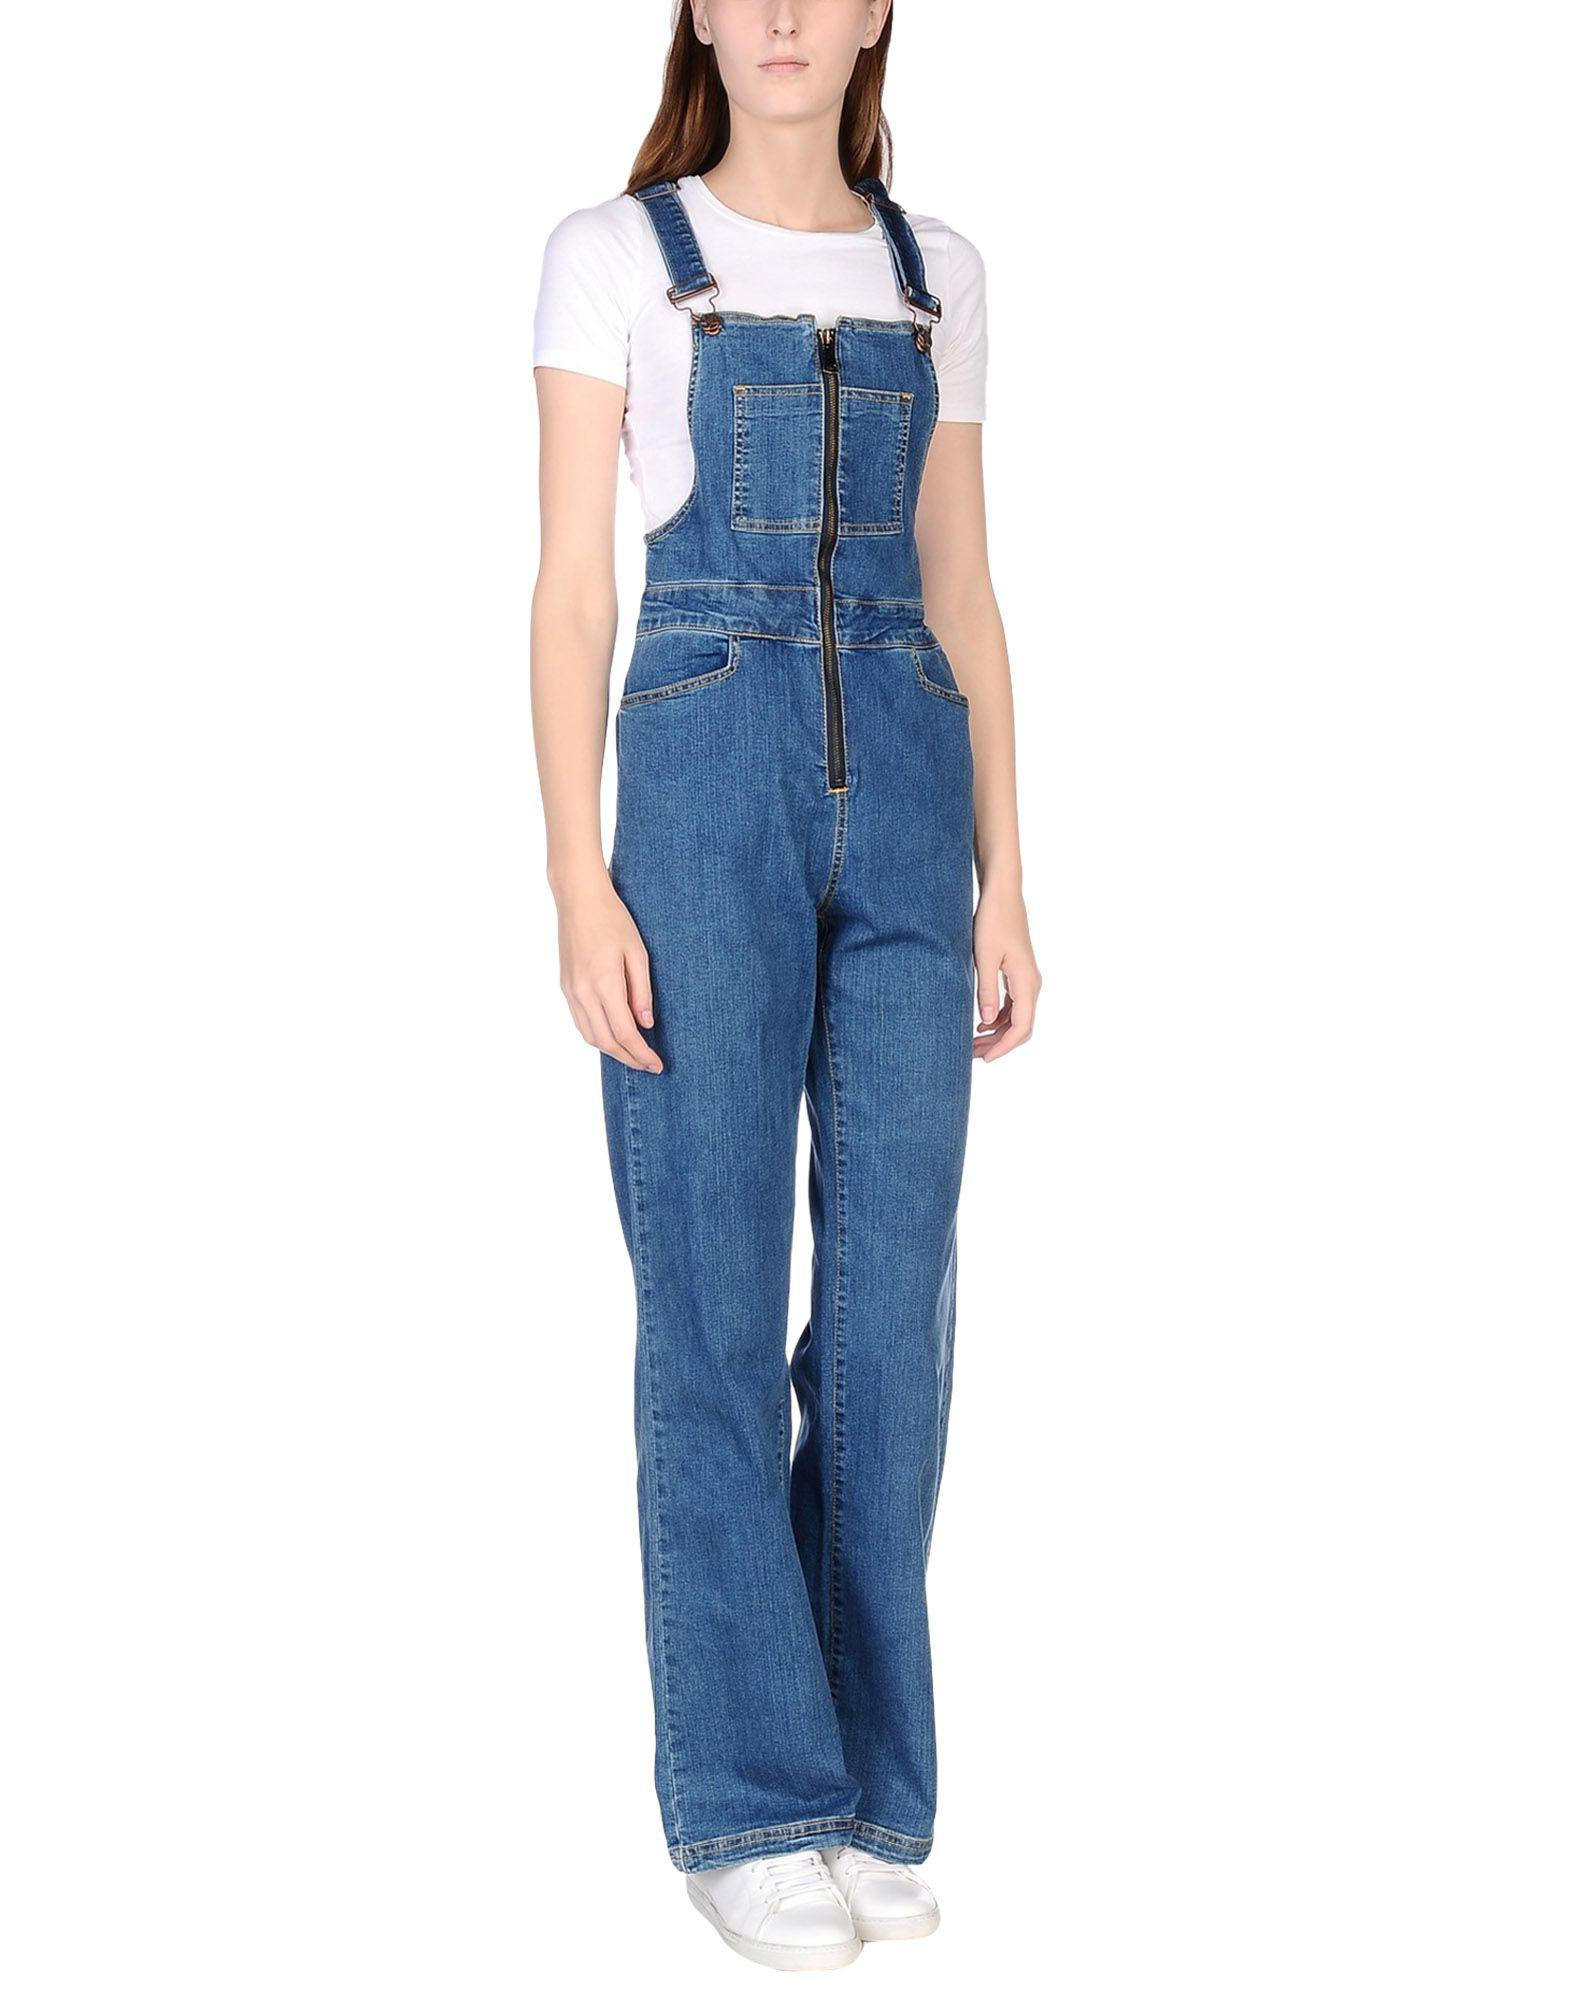 DUNGAREES - Jumpsuits Silvian Heach Buy Cheap Outlet Store Discounts For Sale Clearance Outlet Locations Discount Clearance Store KllRT